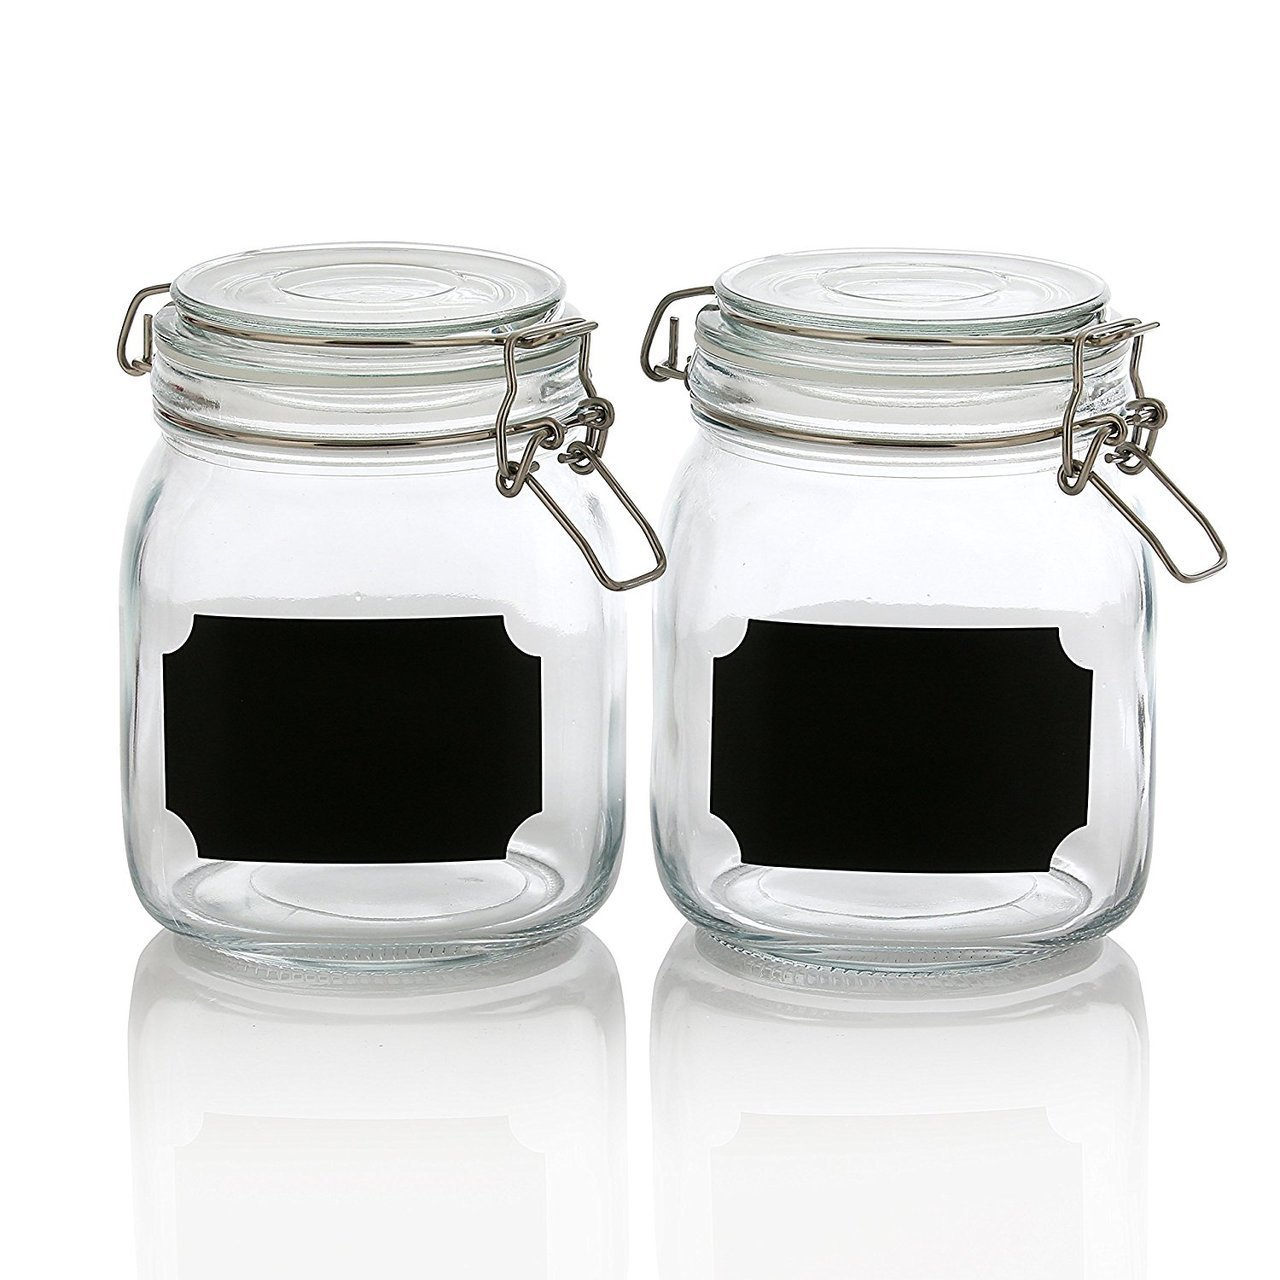 Set of 2, 32 Ounce Clear Airtight Canister Set with Chalkboard Labels, Glass Jars for Cereal, Flour, Pantry Storage Jars pv32j